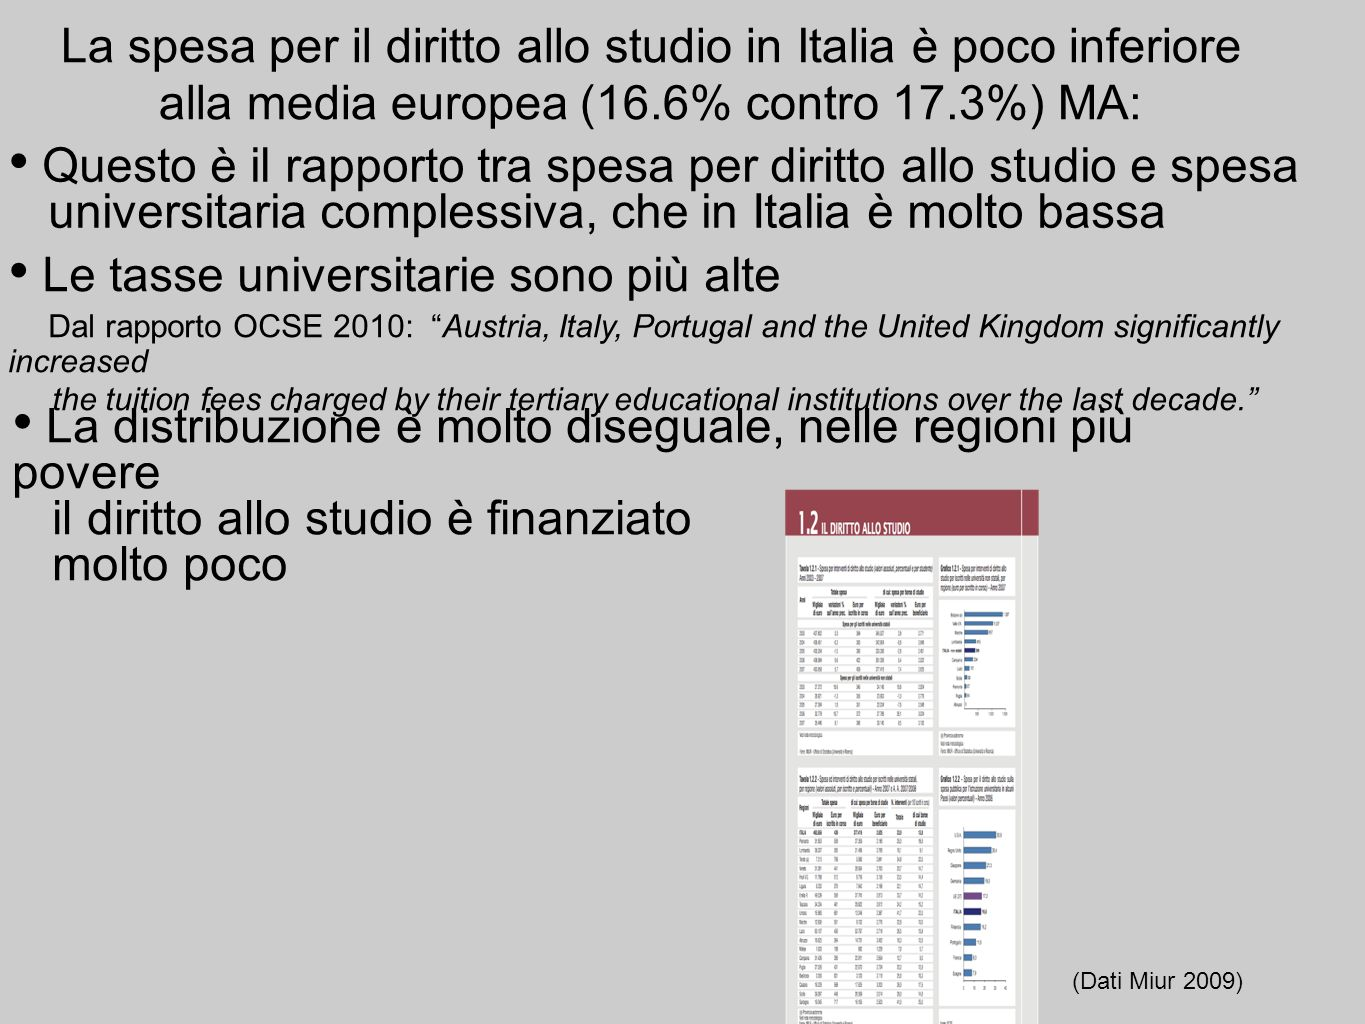 La spesa per il diritto allo studio in Italia è poco inferiore alla media europea (16.6% contro 17.3%) MA: Le tasse universitarie sono più alte Dal rapporto OCSE 2010: Austria, Italy, Portugal and the United Kingdom significantly increased the tuition fees charged by their tertiary educational institutions over the last decade.